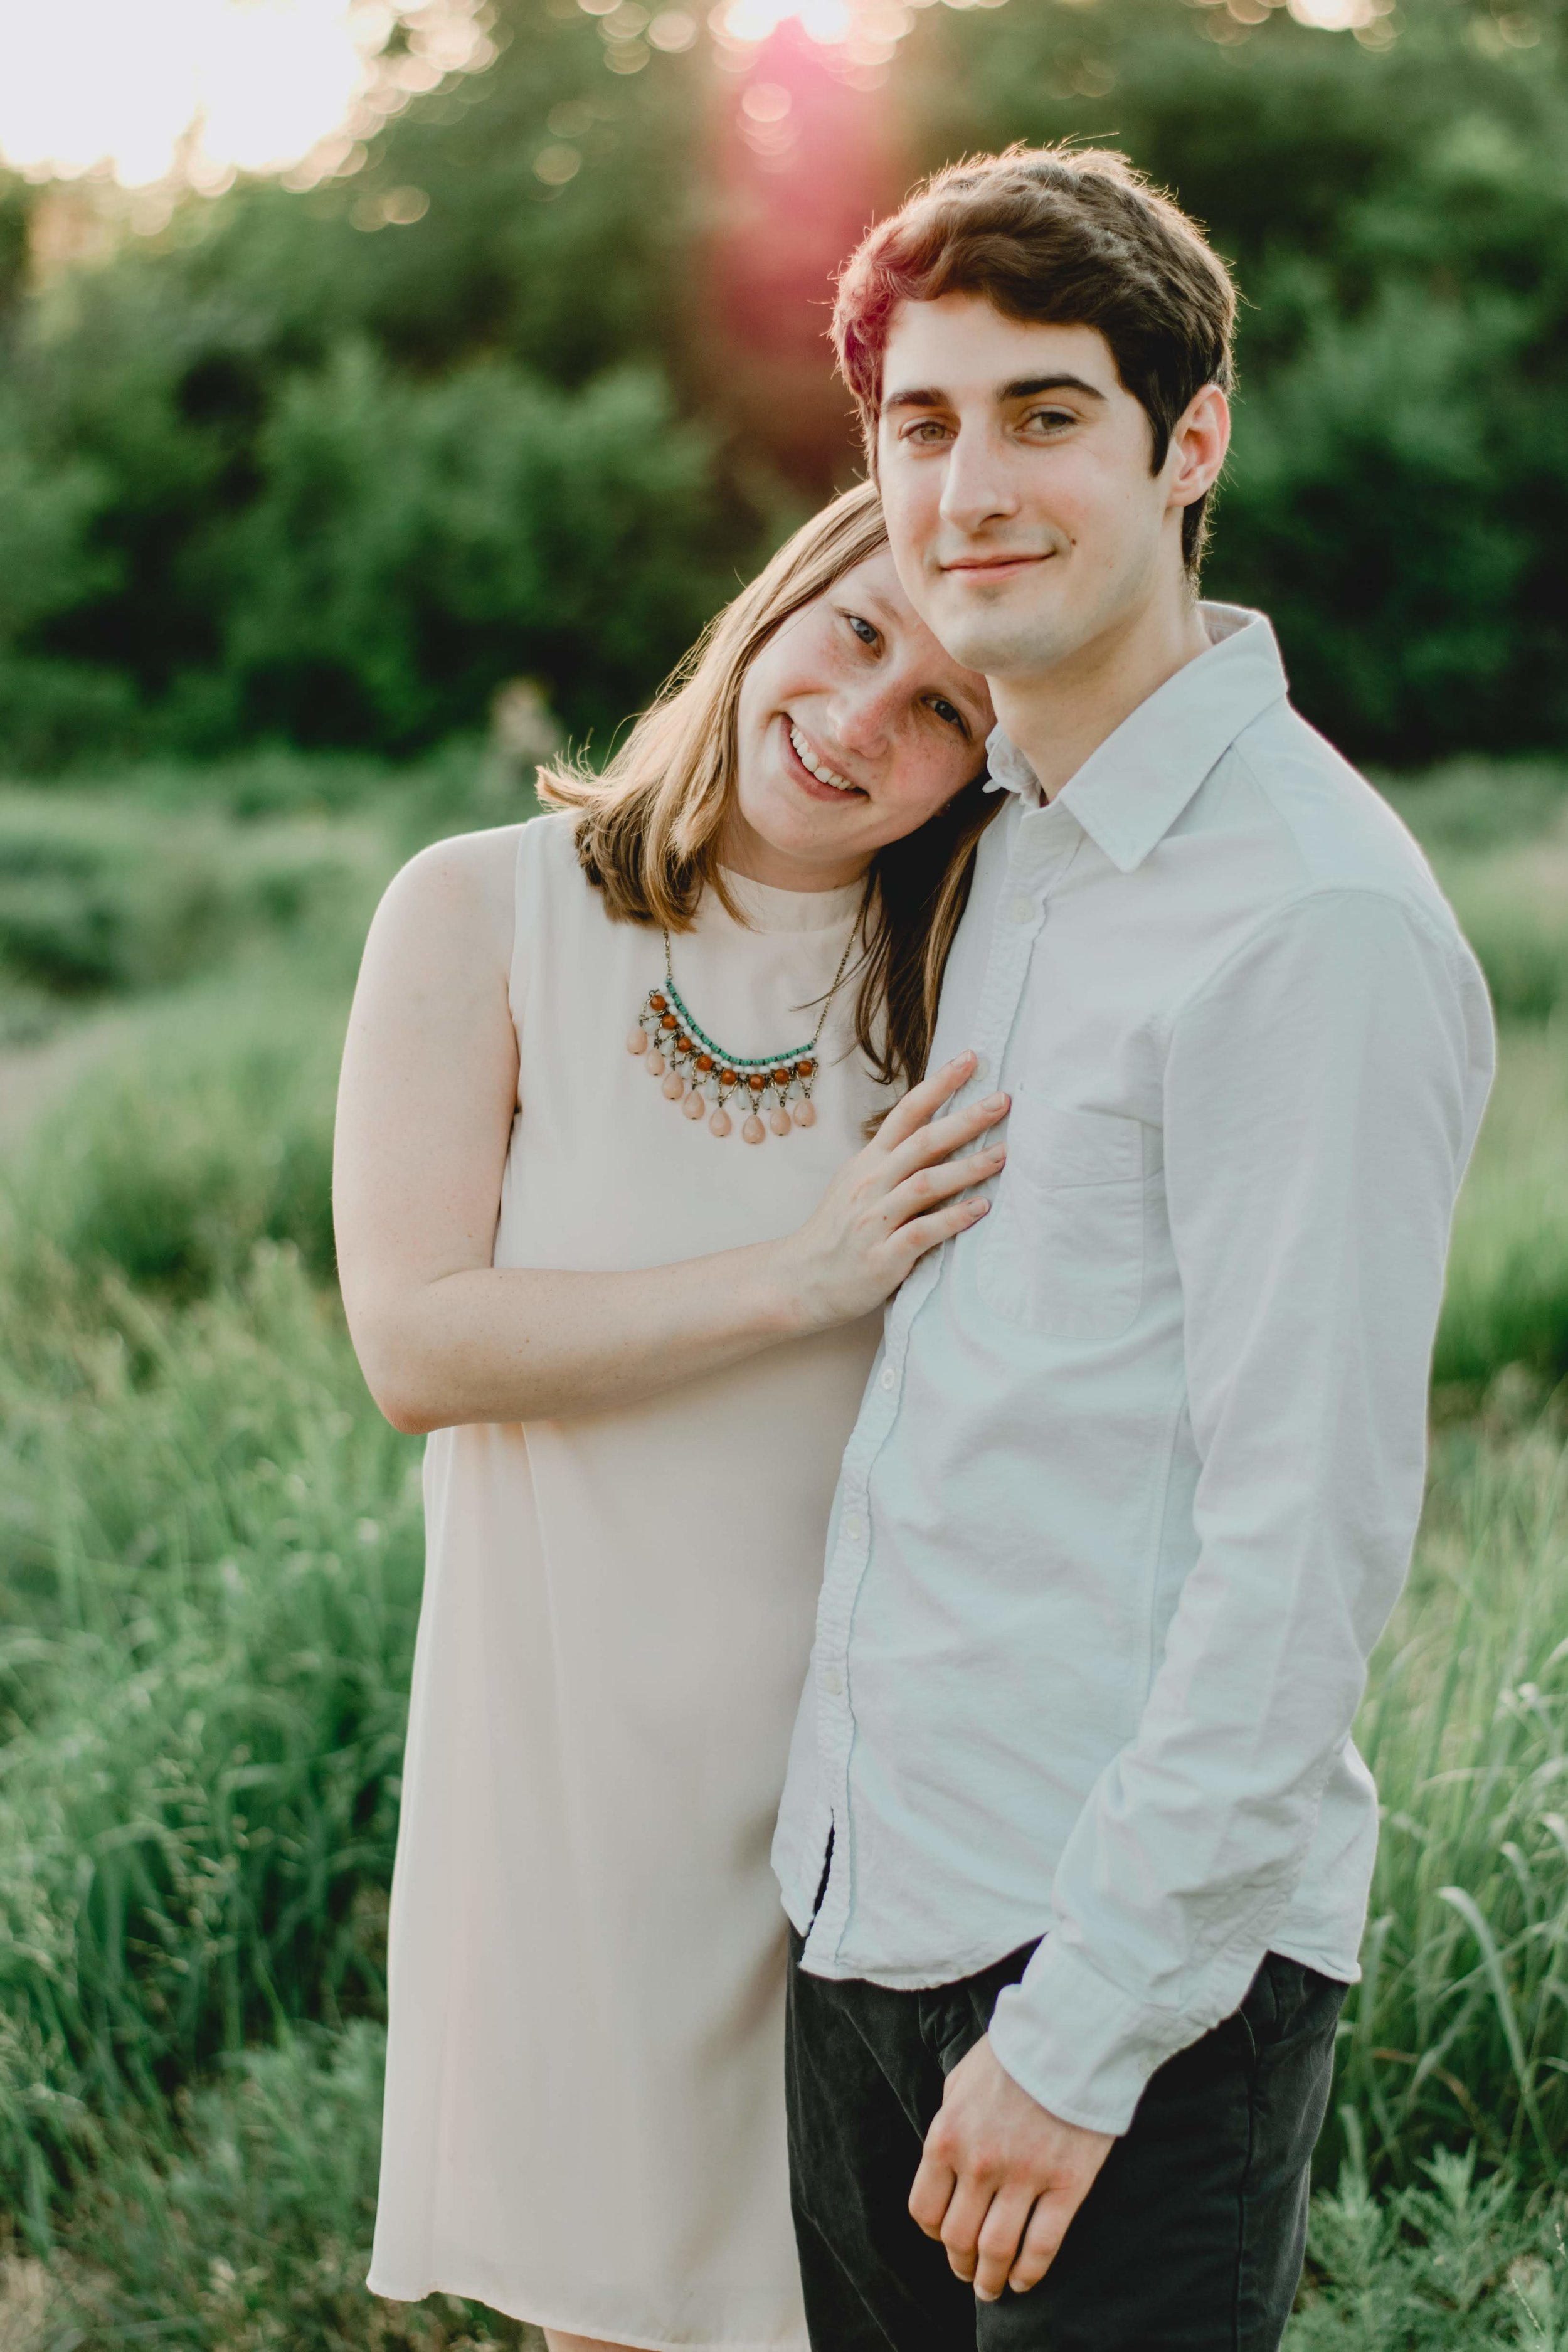 Tips for taking photogenic engagement photos